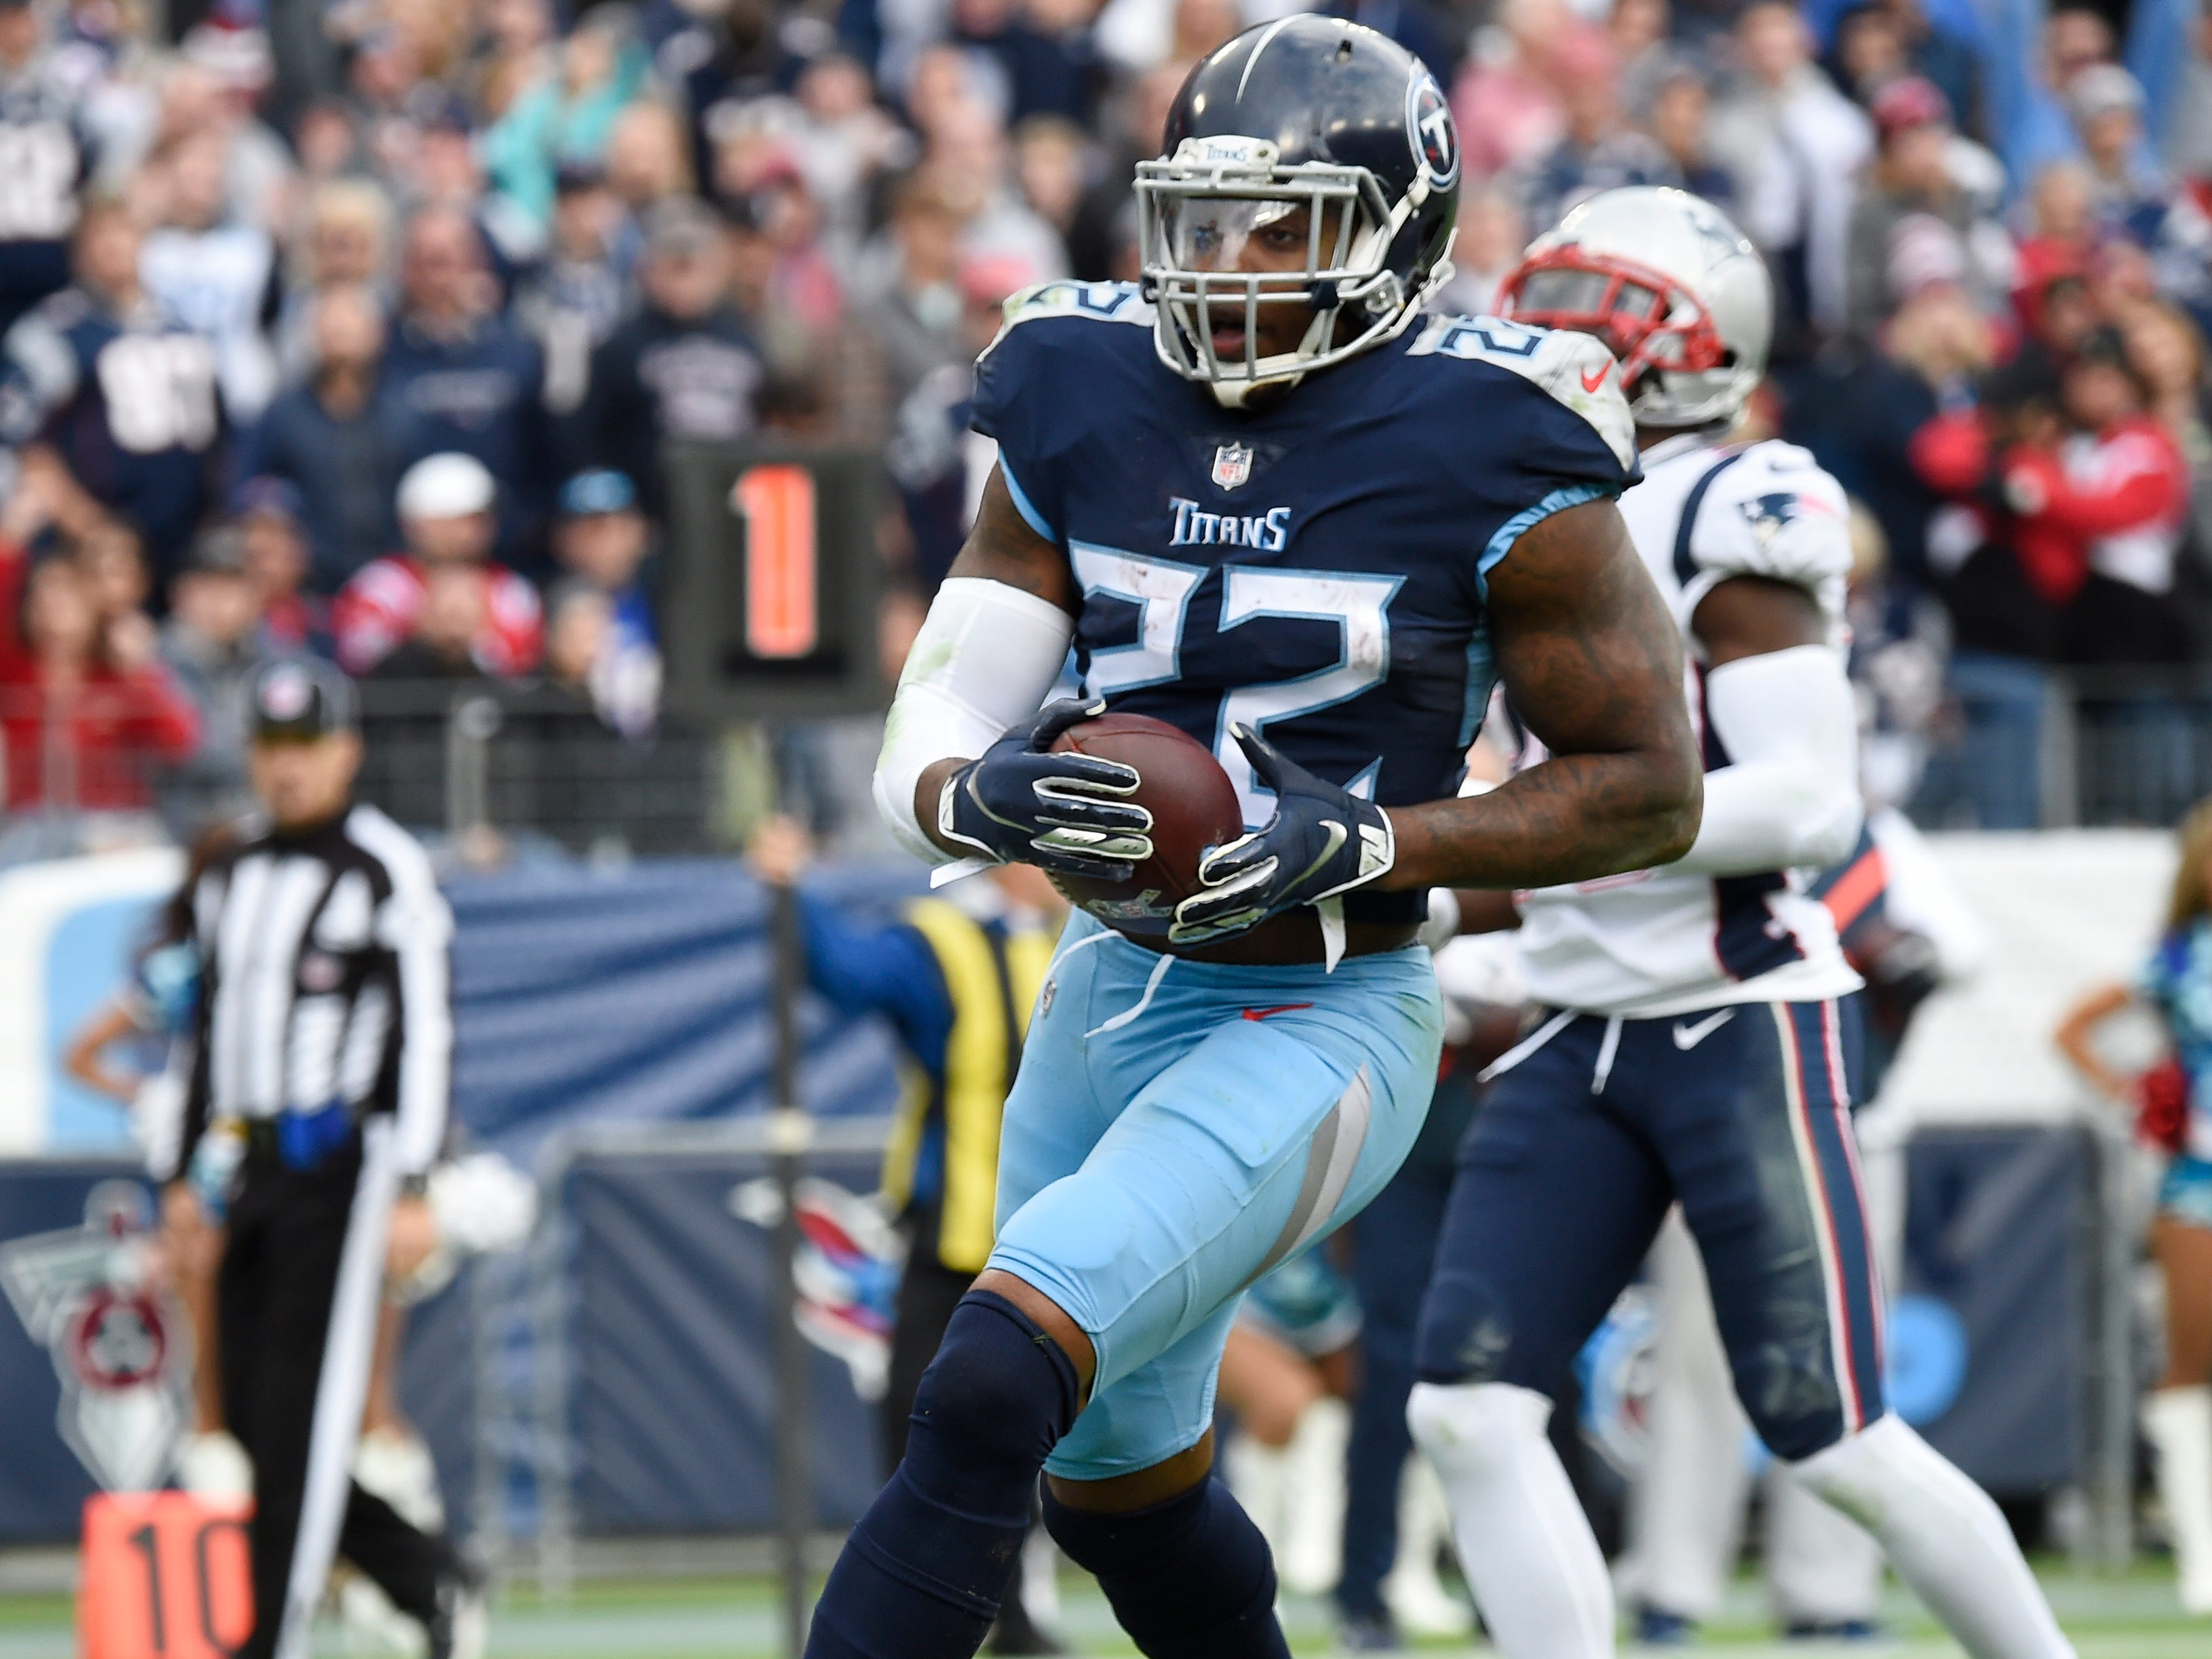 Titans running back Derrick Henry (22) scores his second touchdown of the game against the Patriots at Nissan Stadium Sunday, Nov. 11, 2018, in Nashville, Tenn.